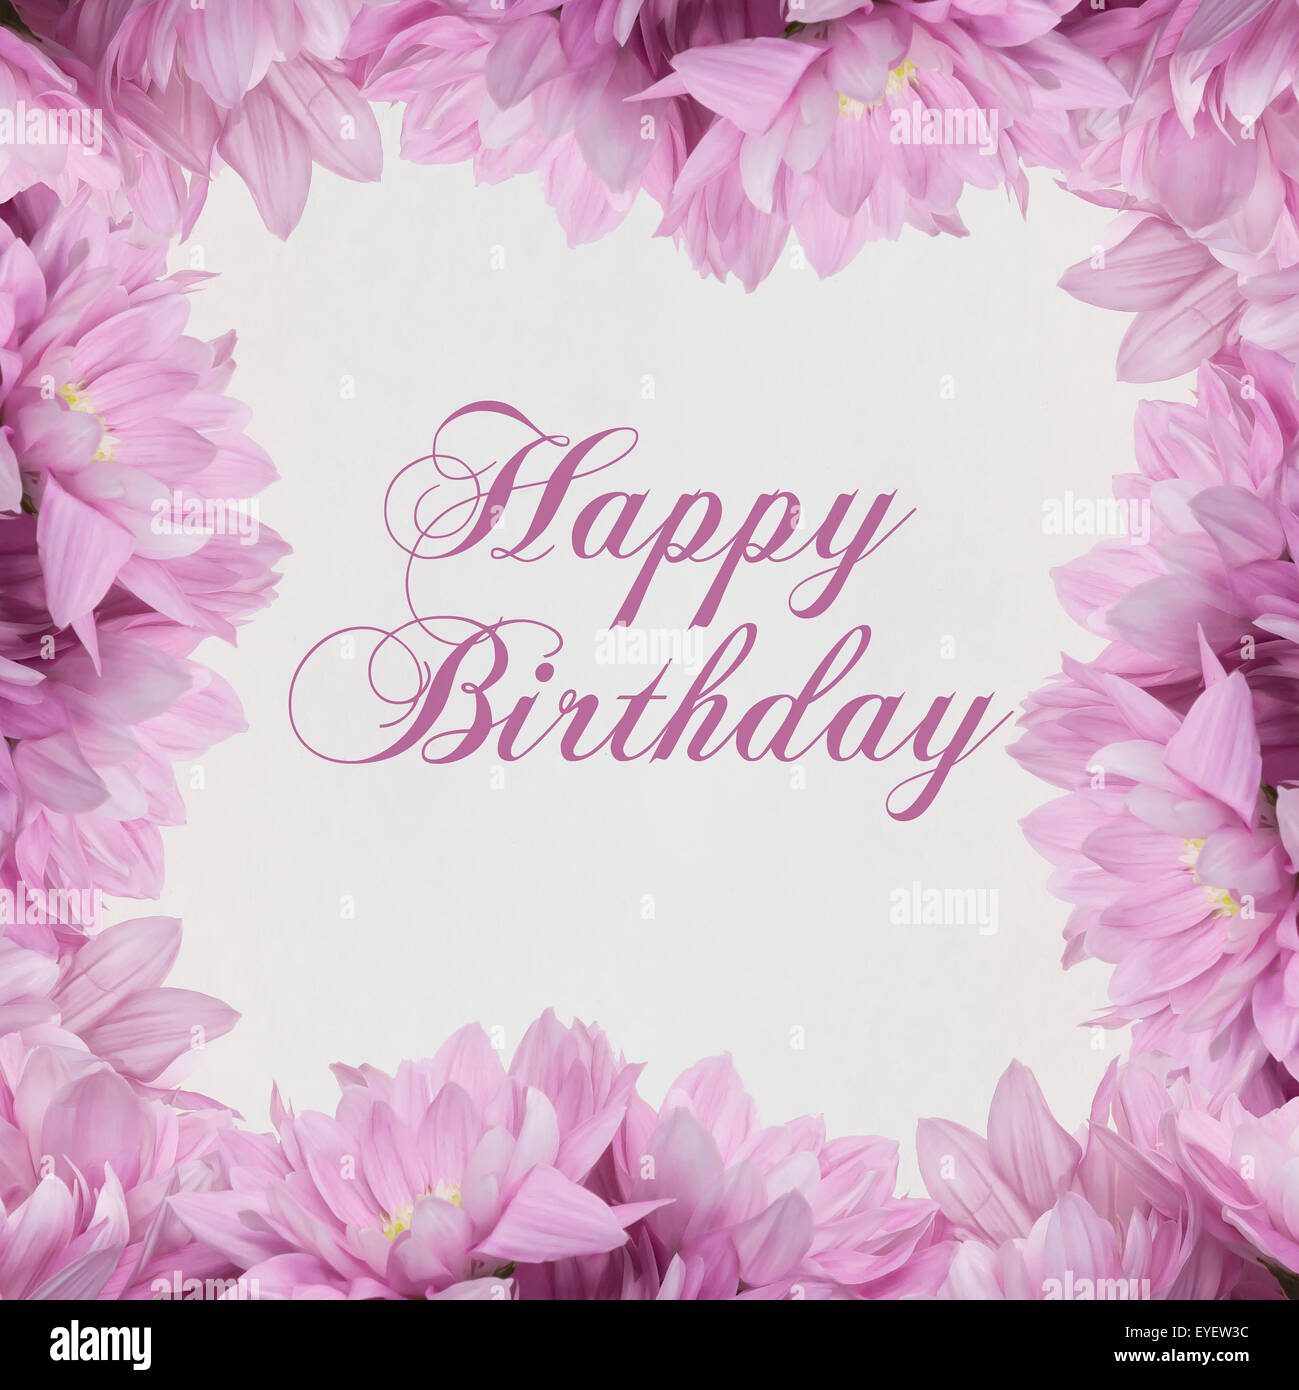 Joyeux Anniversaire Carte Avec Decoration Florale Photo Stock Alamy